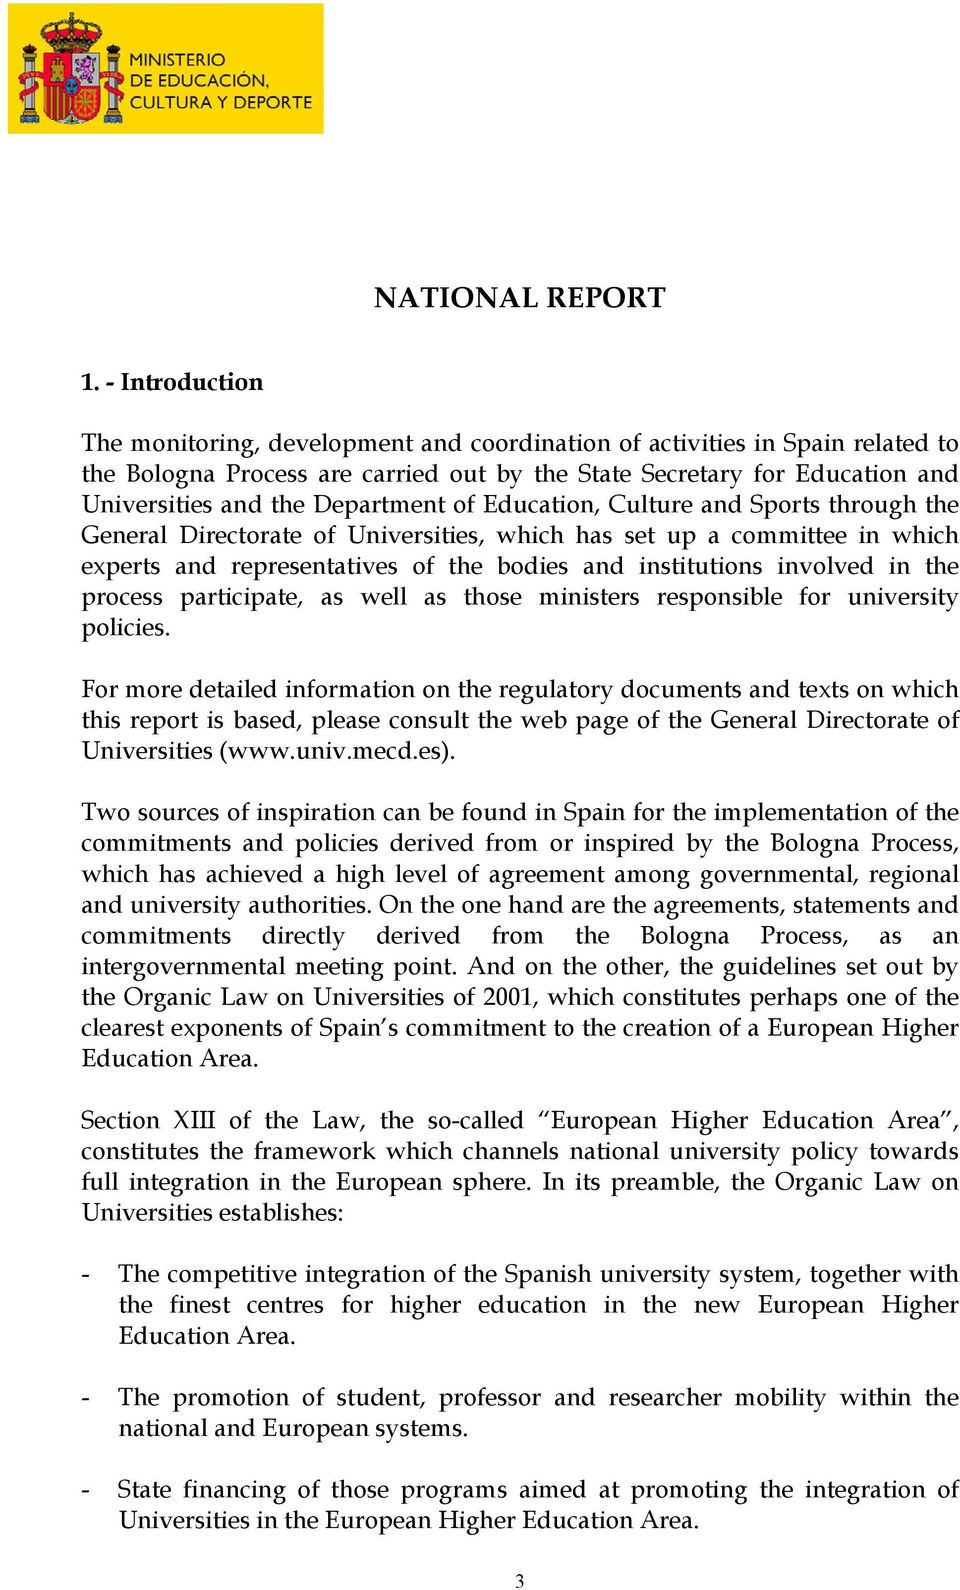 Department of Education, Culture and Sports through the General Directorate of Universities, which has set up a committee in which experts and representatives of the bodies and institutions involved